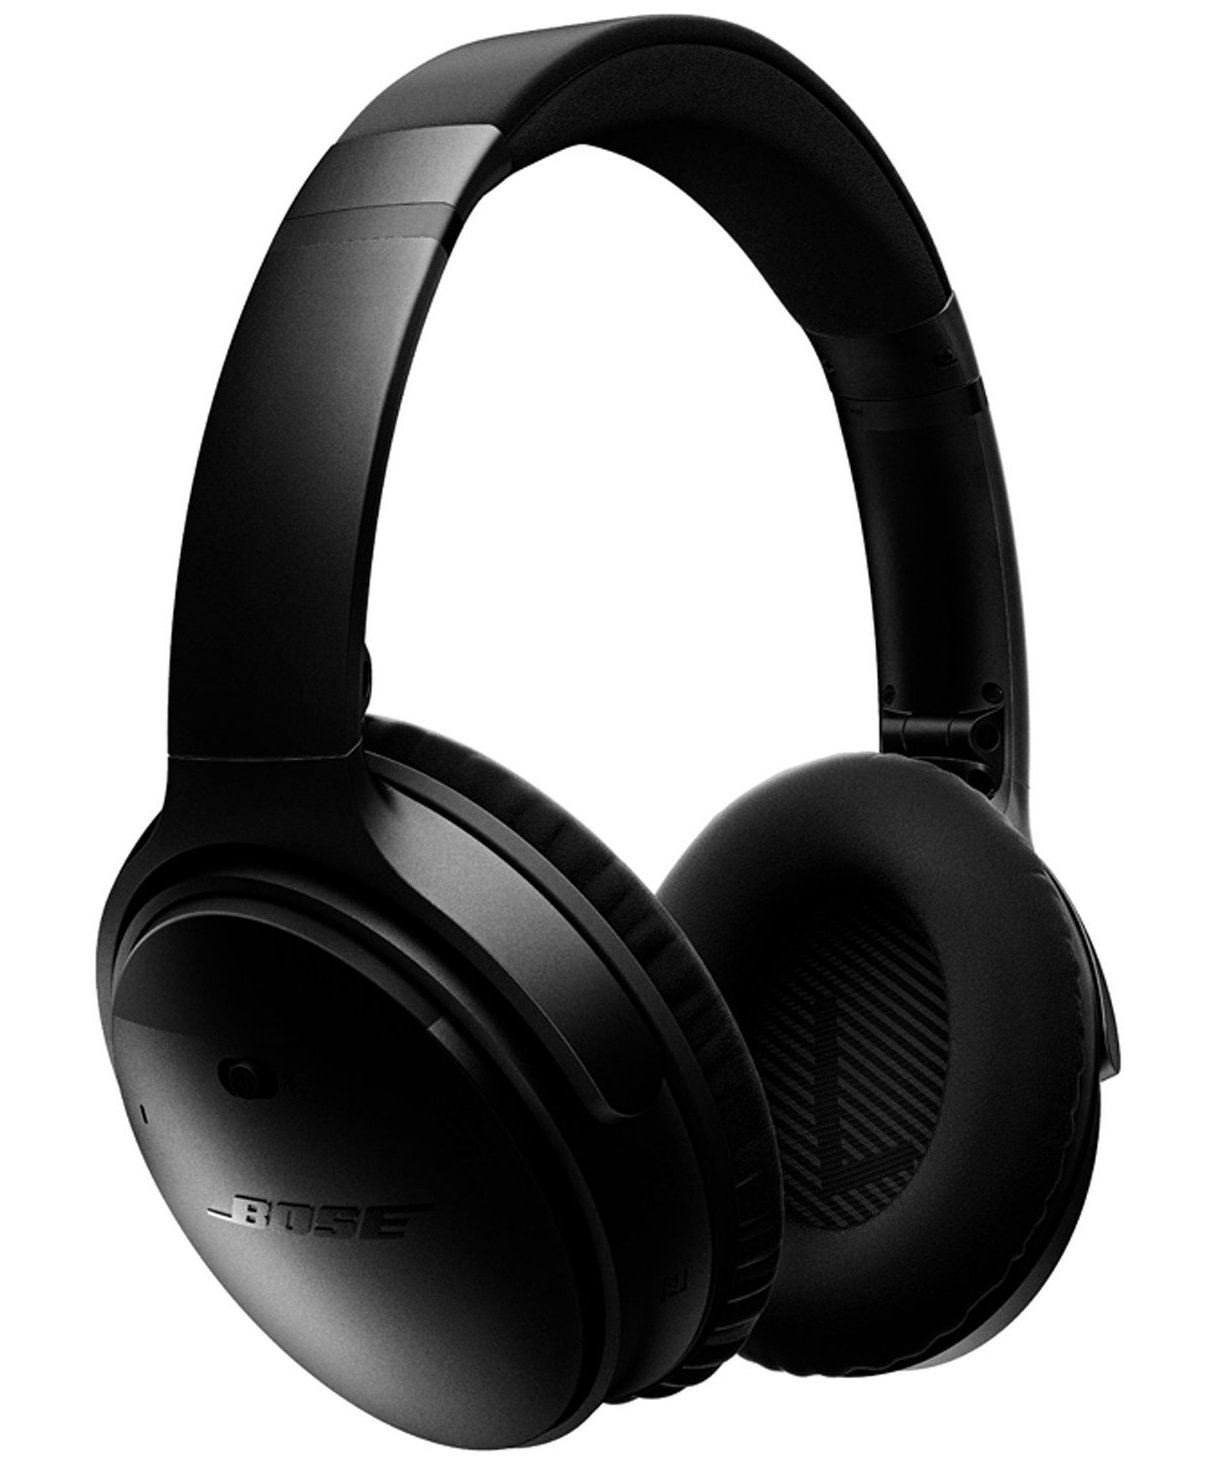 d78f77202e3e0d 1ST-CHOICE: Bose QuietComfort 35 Wireless Headphones with Noise Cancelling  Technology – Check Price Here:-